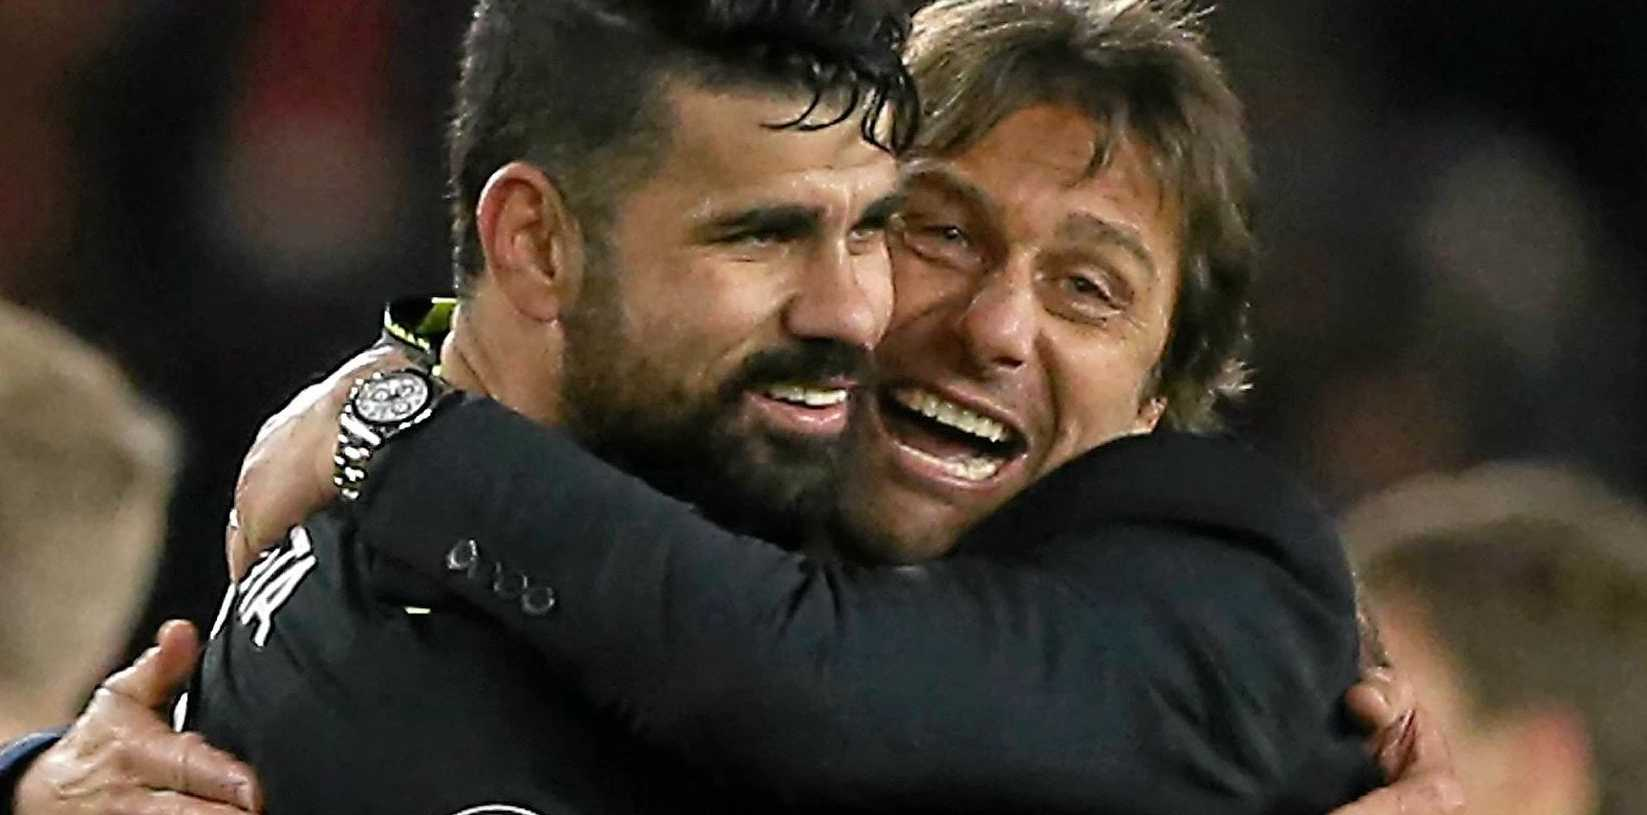 Chelsea manager Antonio Conte (right) congratulates striker Diego Costa after the English Premier League soccer match against Middlesbrough.